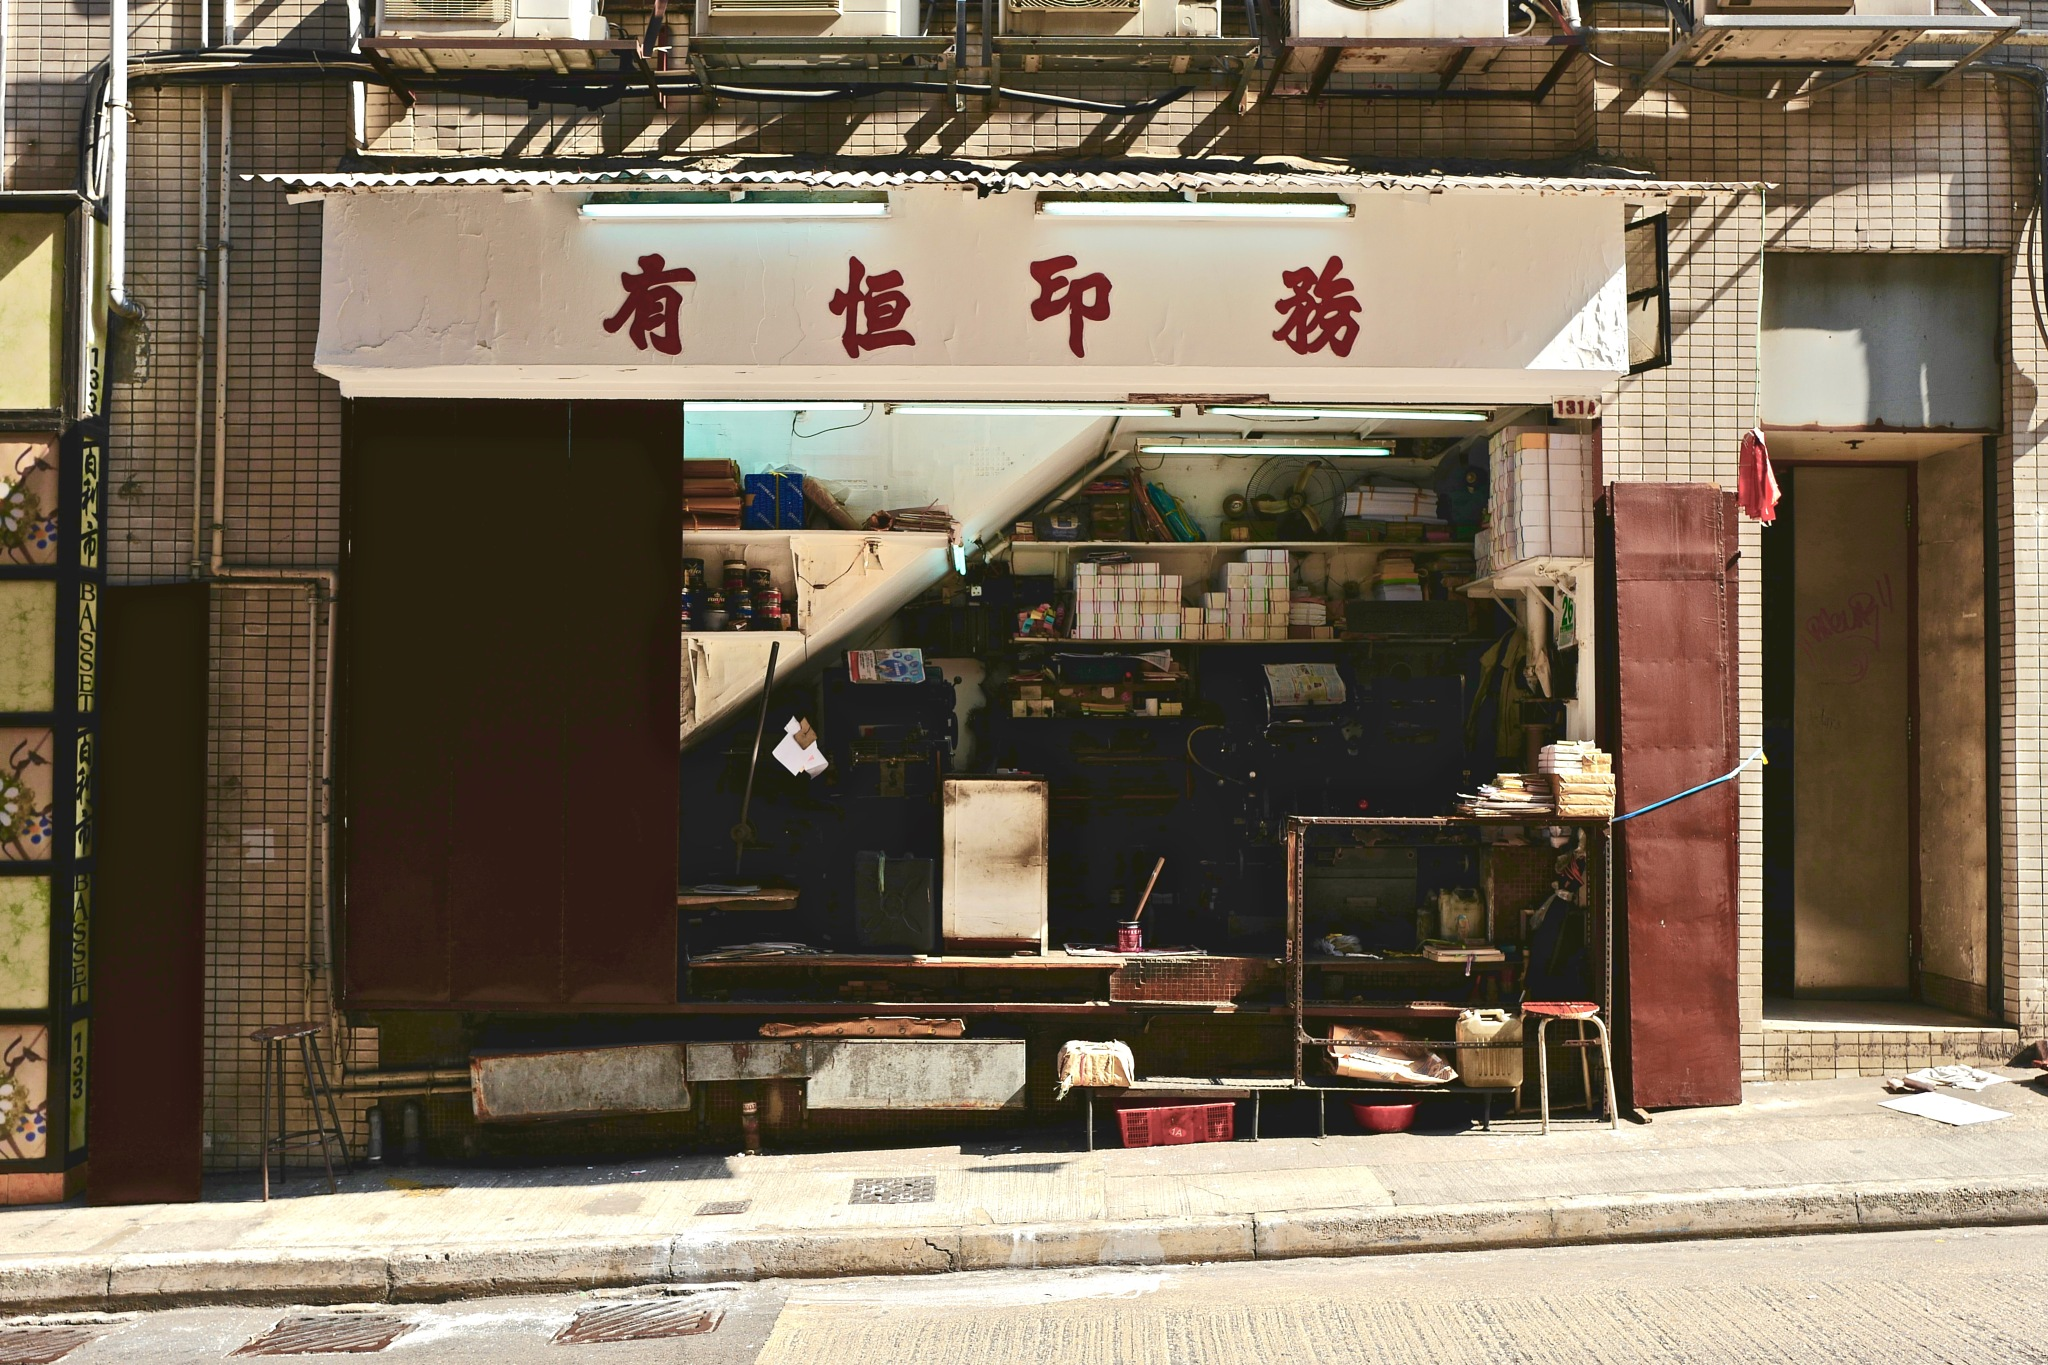 A calligraphy shop in Sheung Wan by Mike Freel